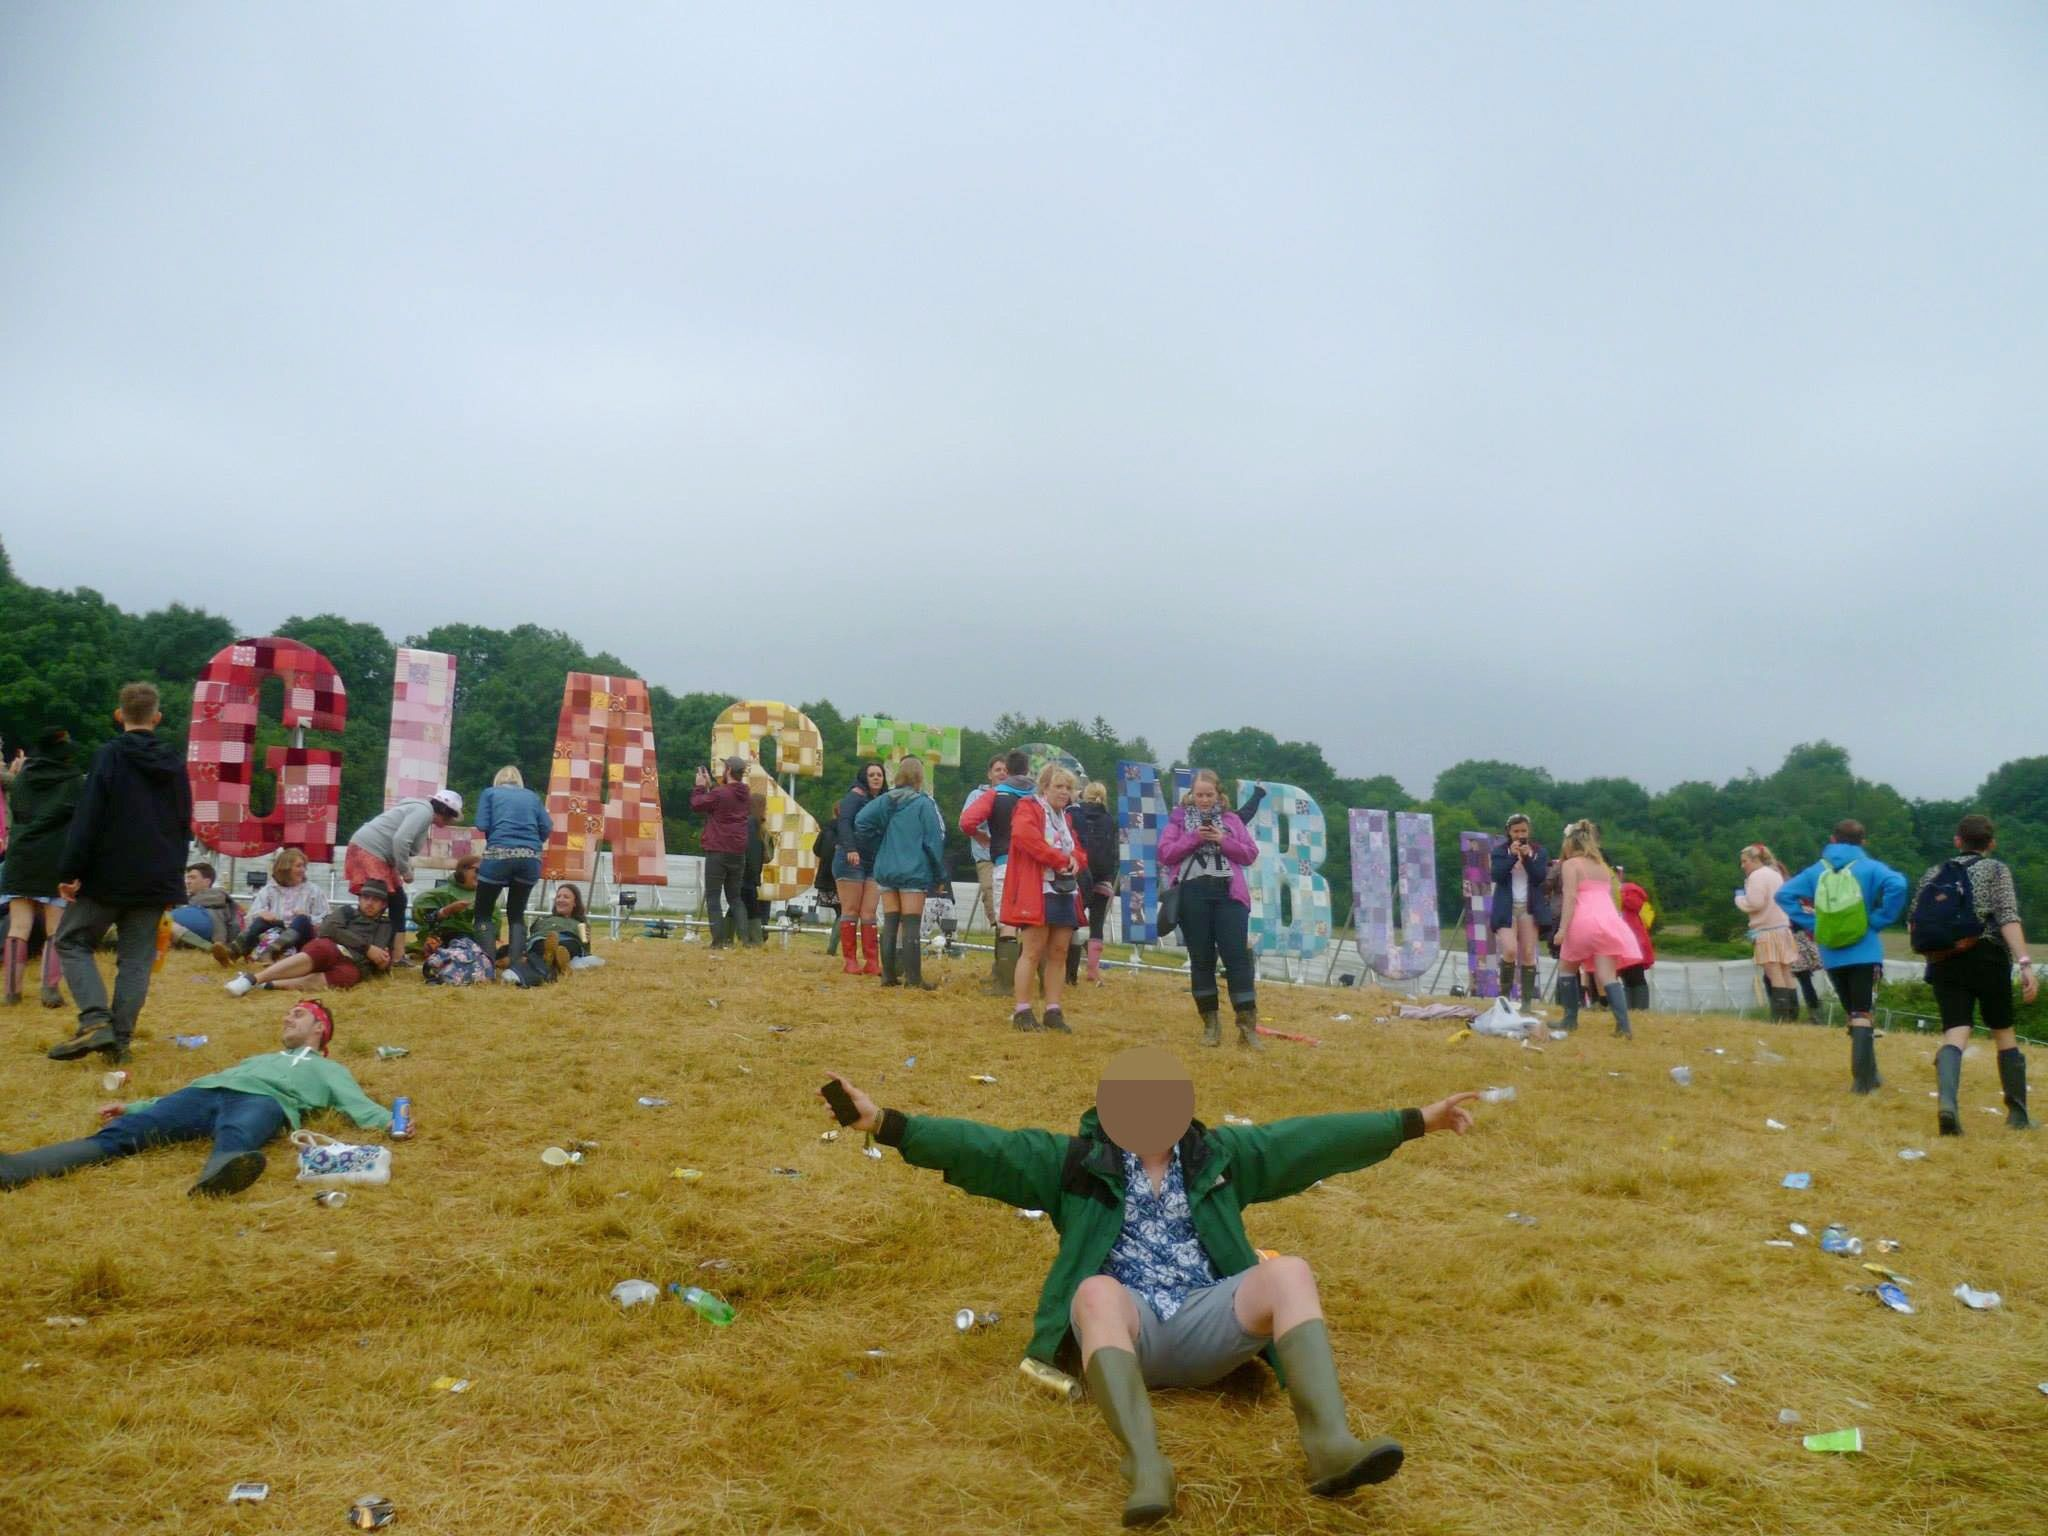 What happens when you're caught with drugs at a festival, by those